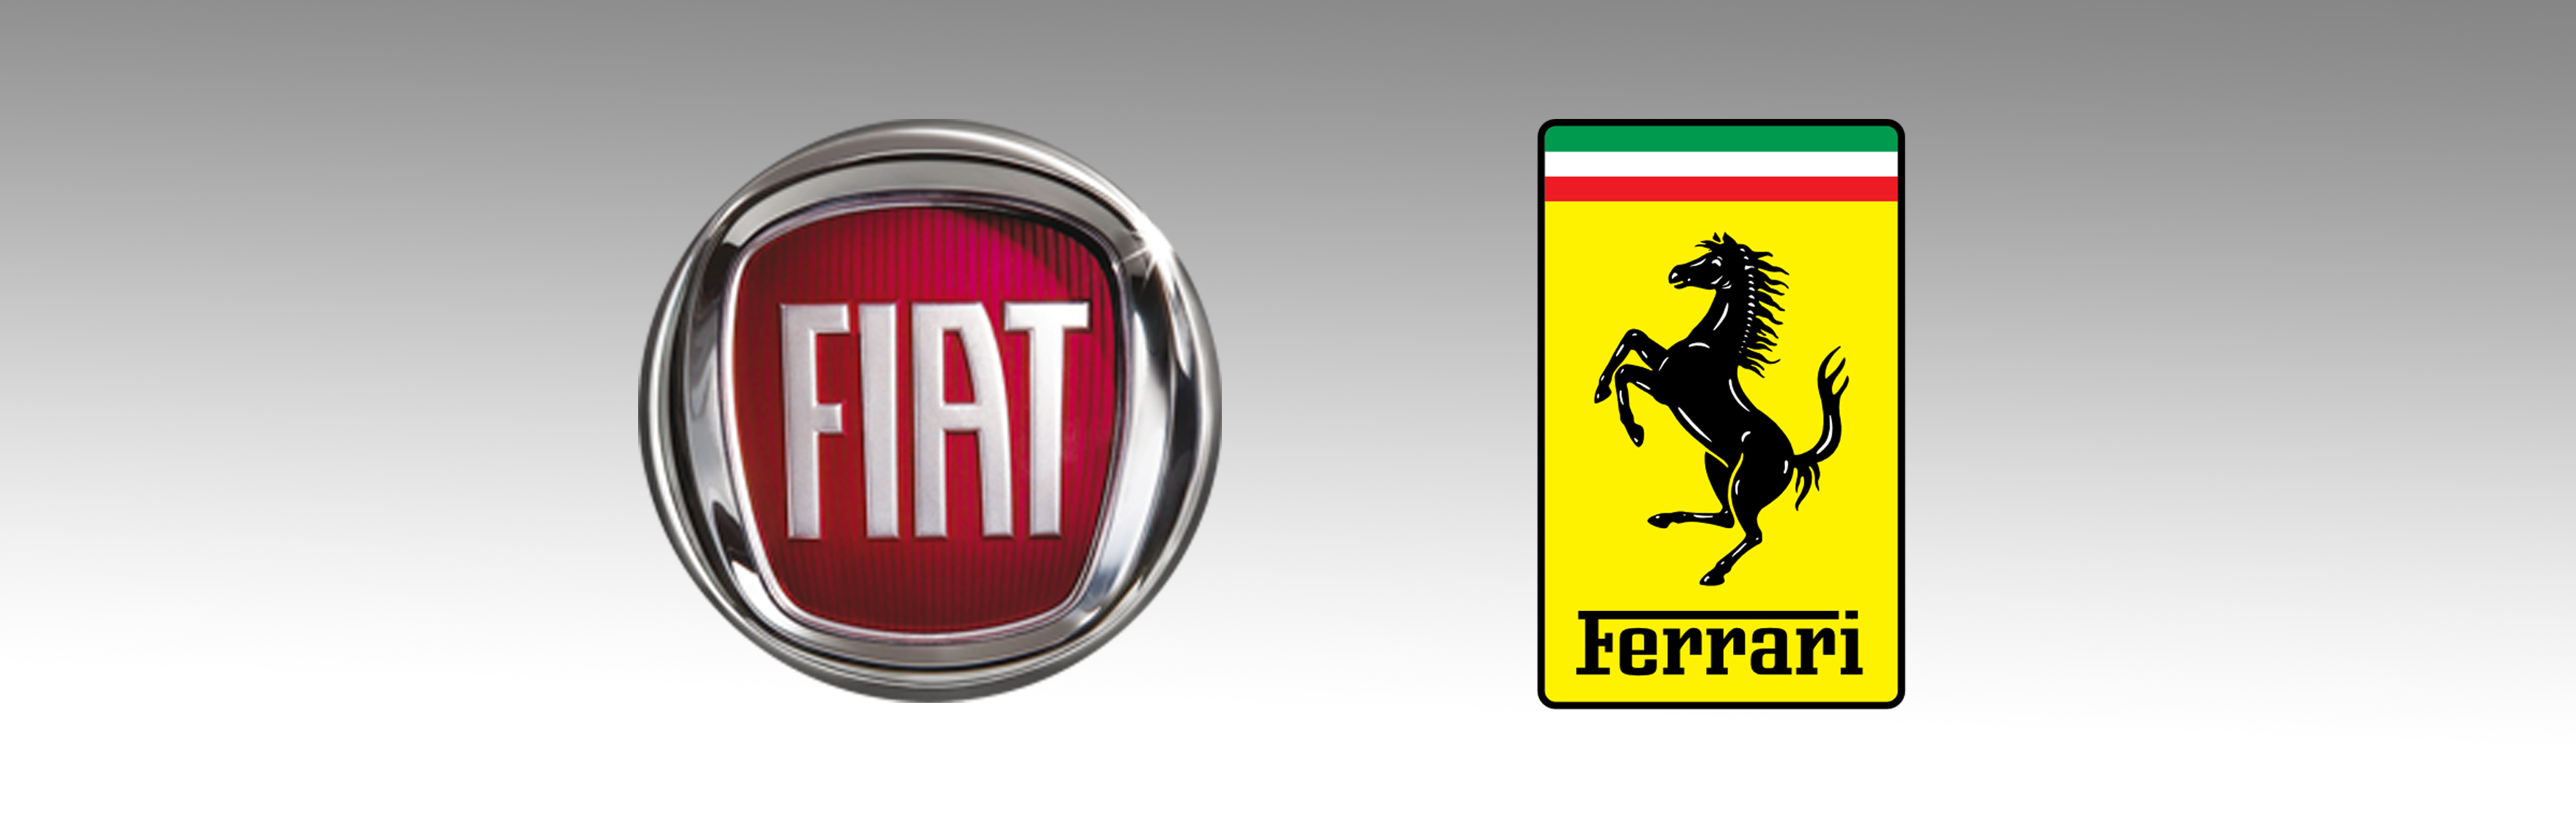 ferrari and fiat relationship help